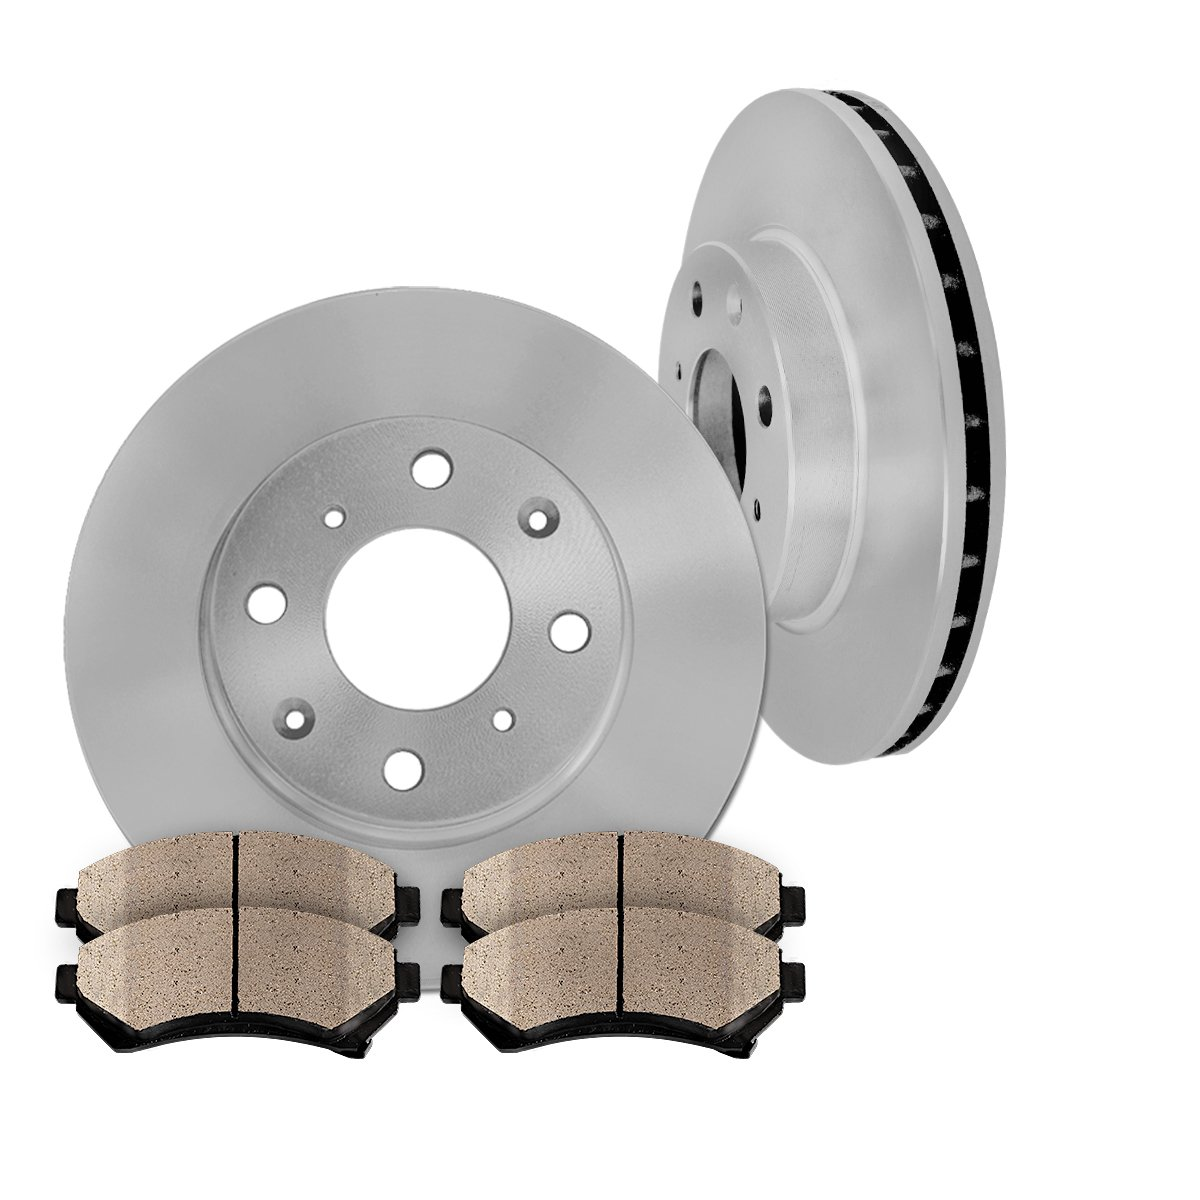 FRONT 257 mm Premium OE 4 Lug [2] Brake Disc Rotors + [4] Ceramic Brake Pads